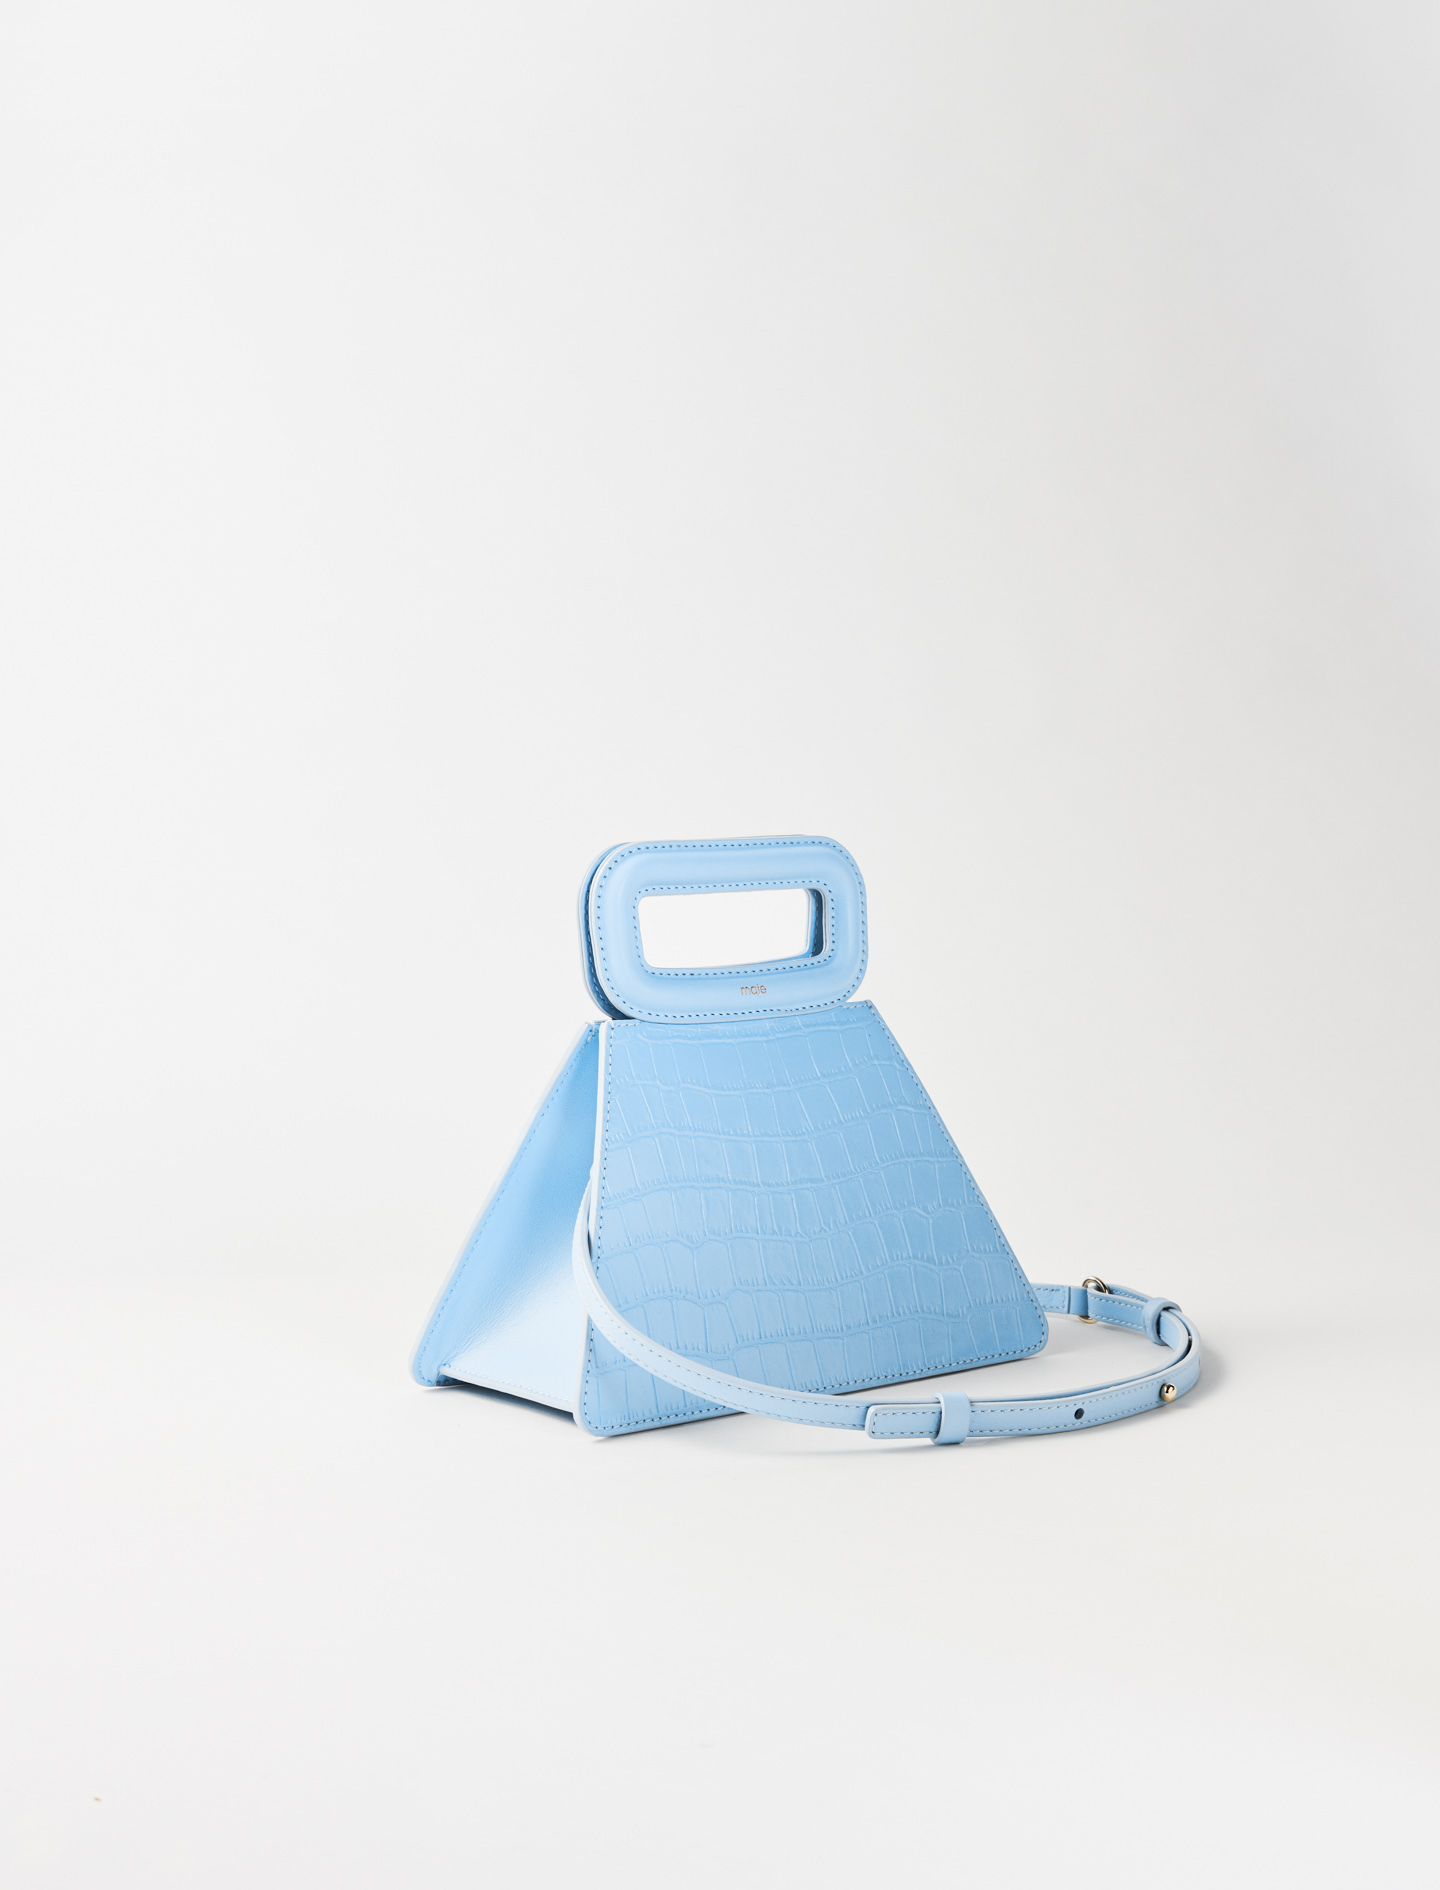 Pyramid bag with embossed leather handle - Blue